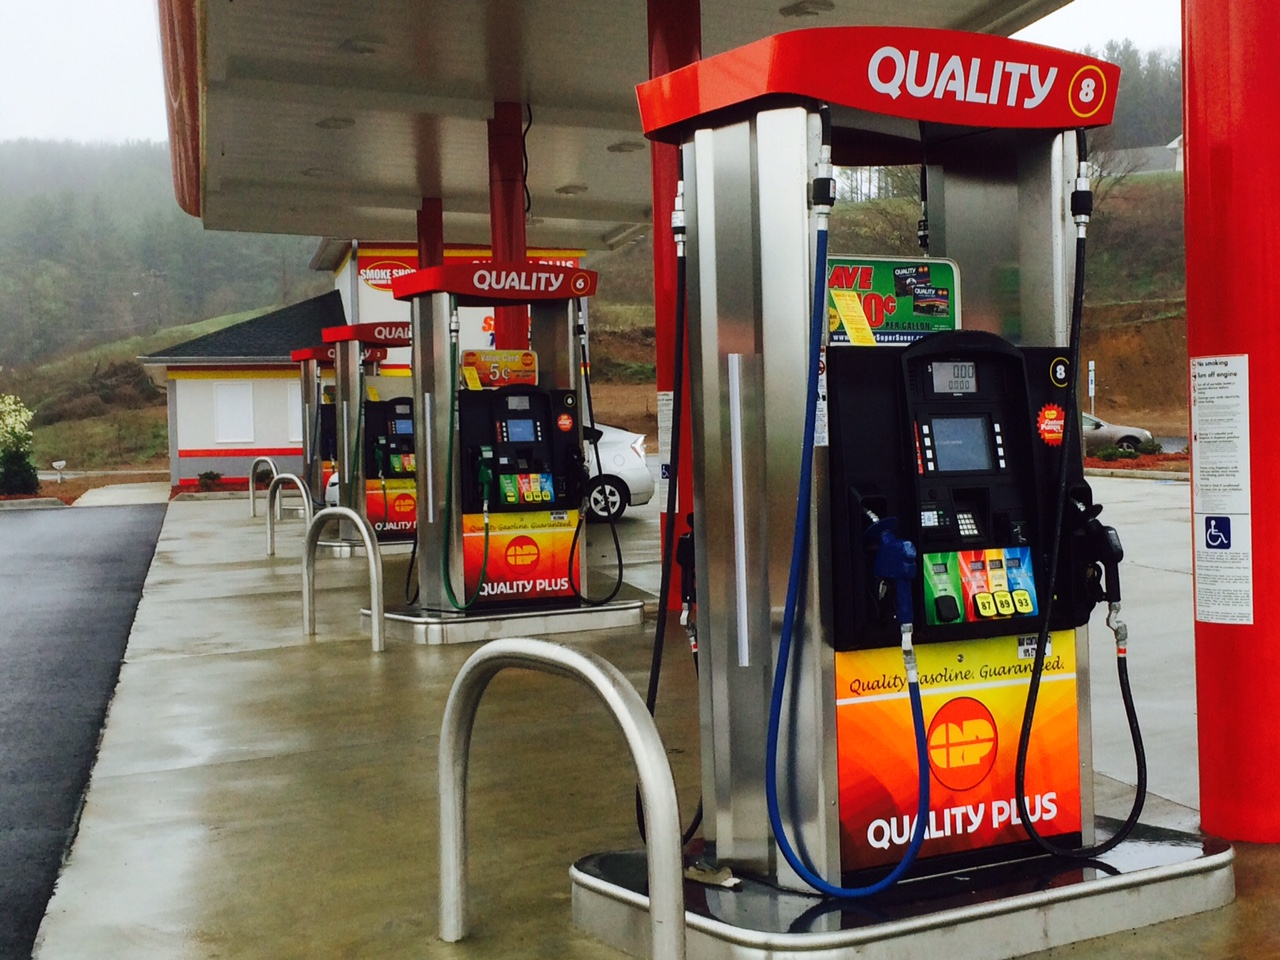 What gas stations high-quality gasoline 54